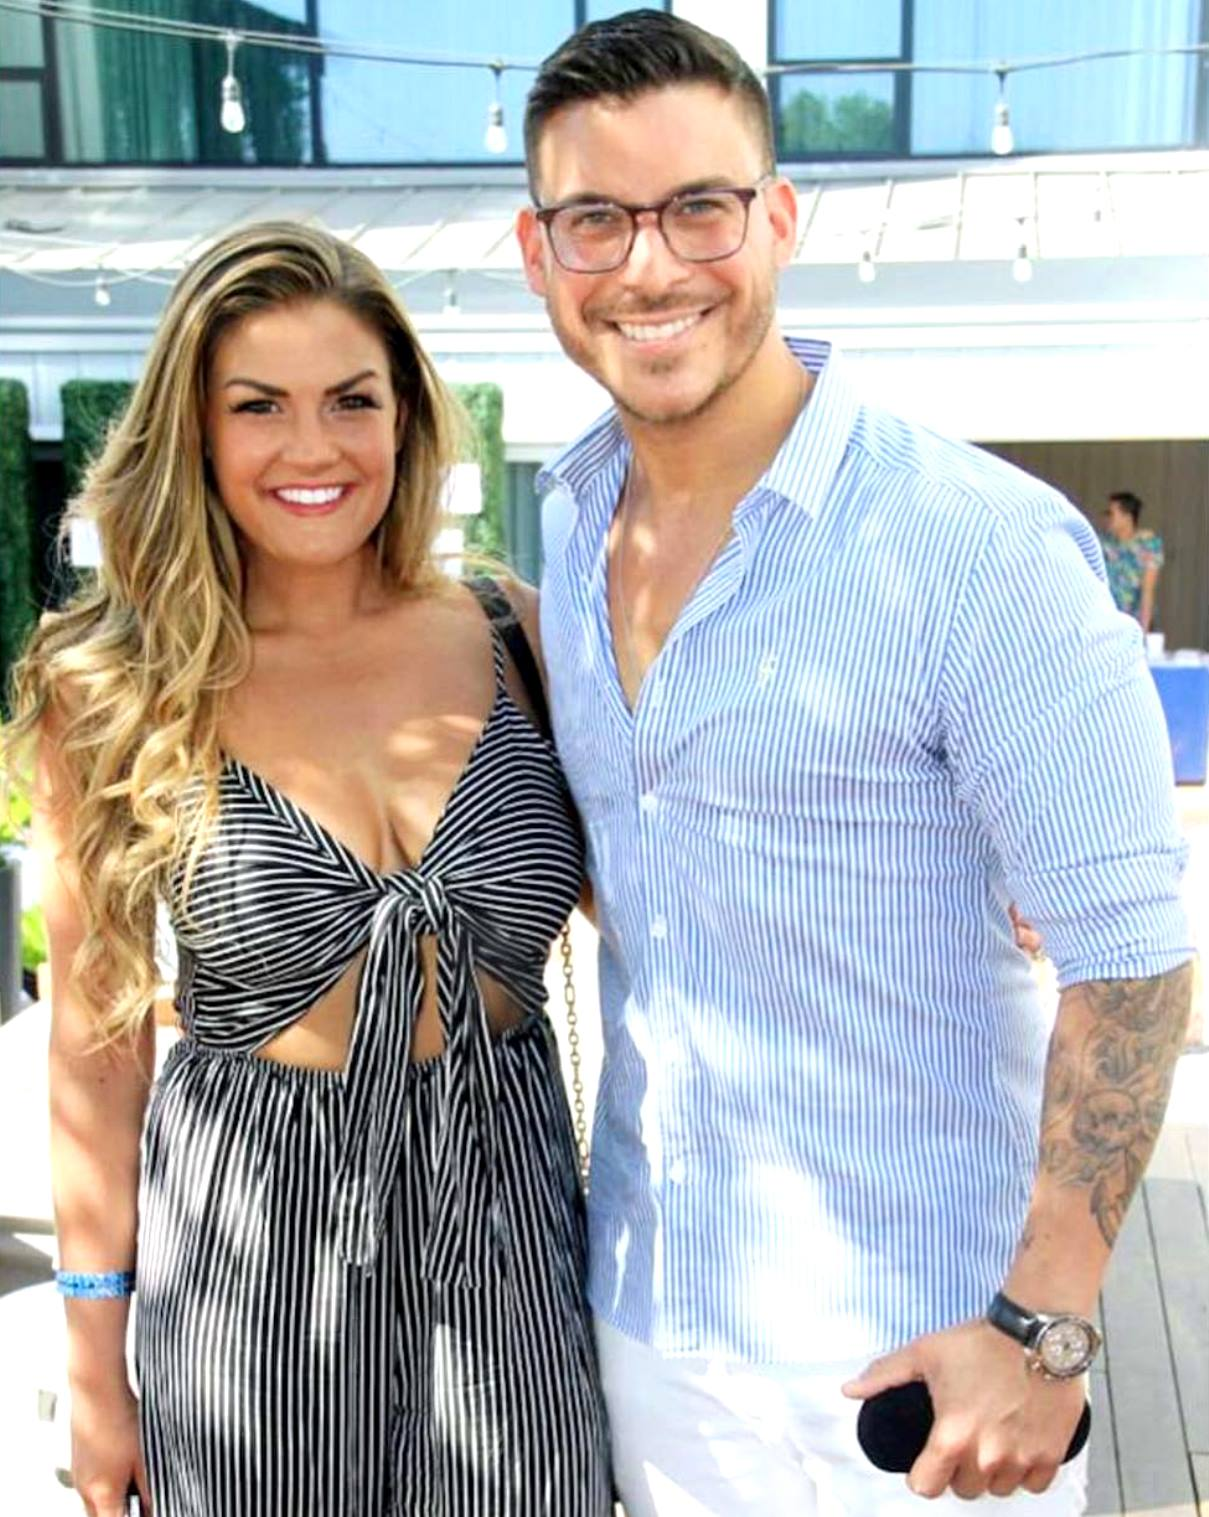 Vanderpump Rules Jax Taylor and Brittany Cartwright Wedding Update